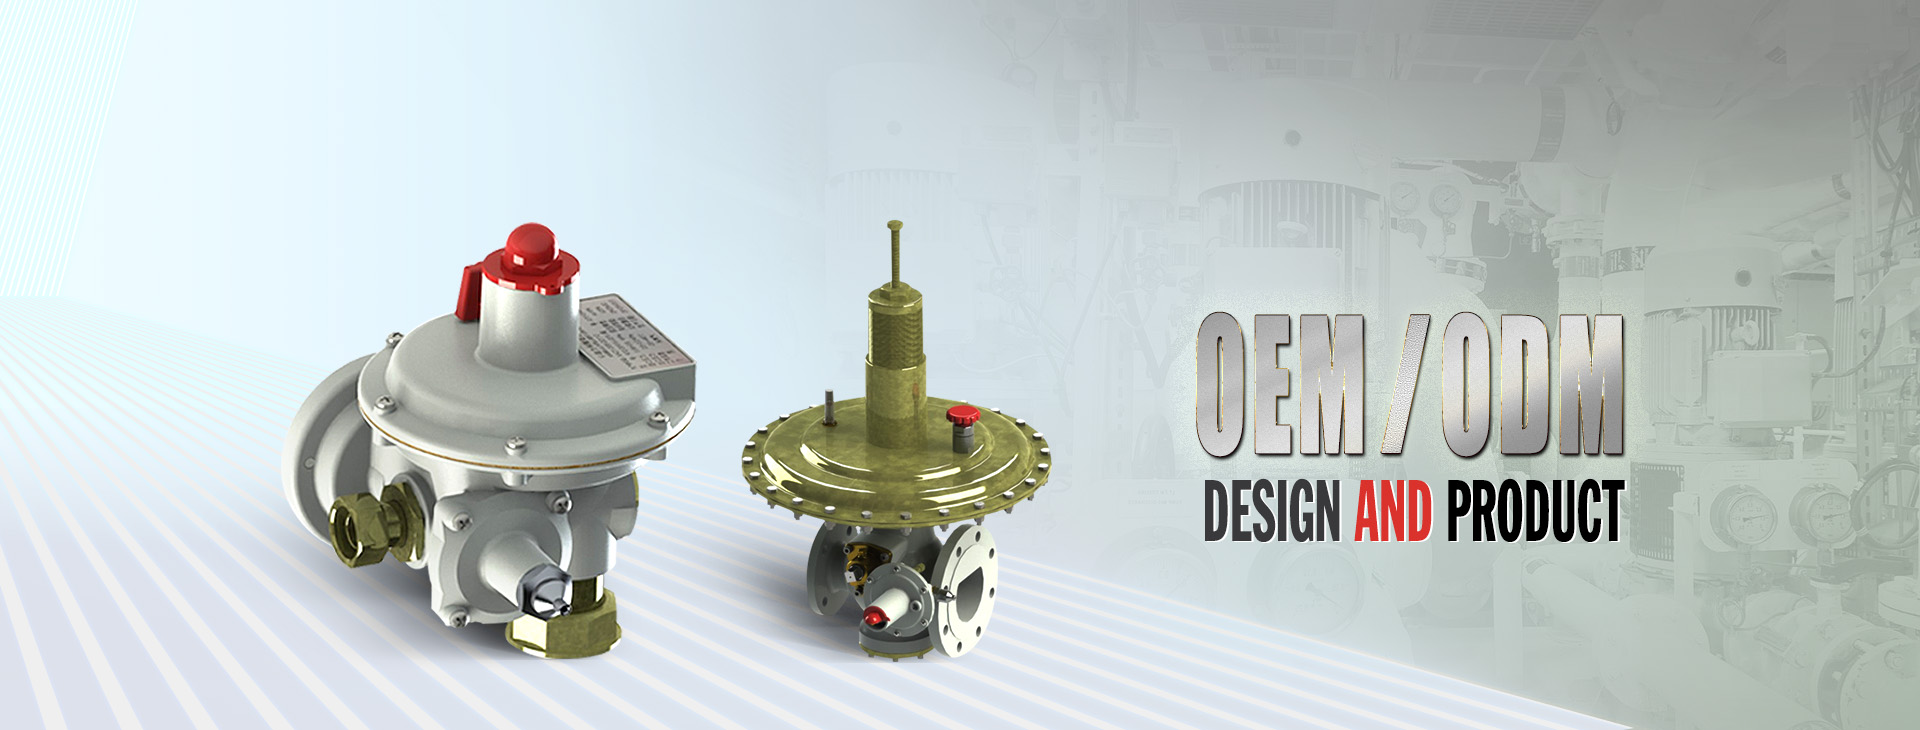 OEM ODM  DESIGN AND PRODUCT